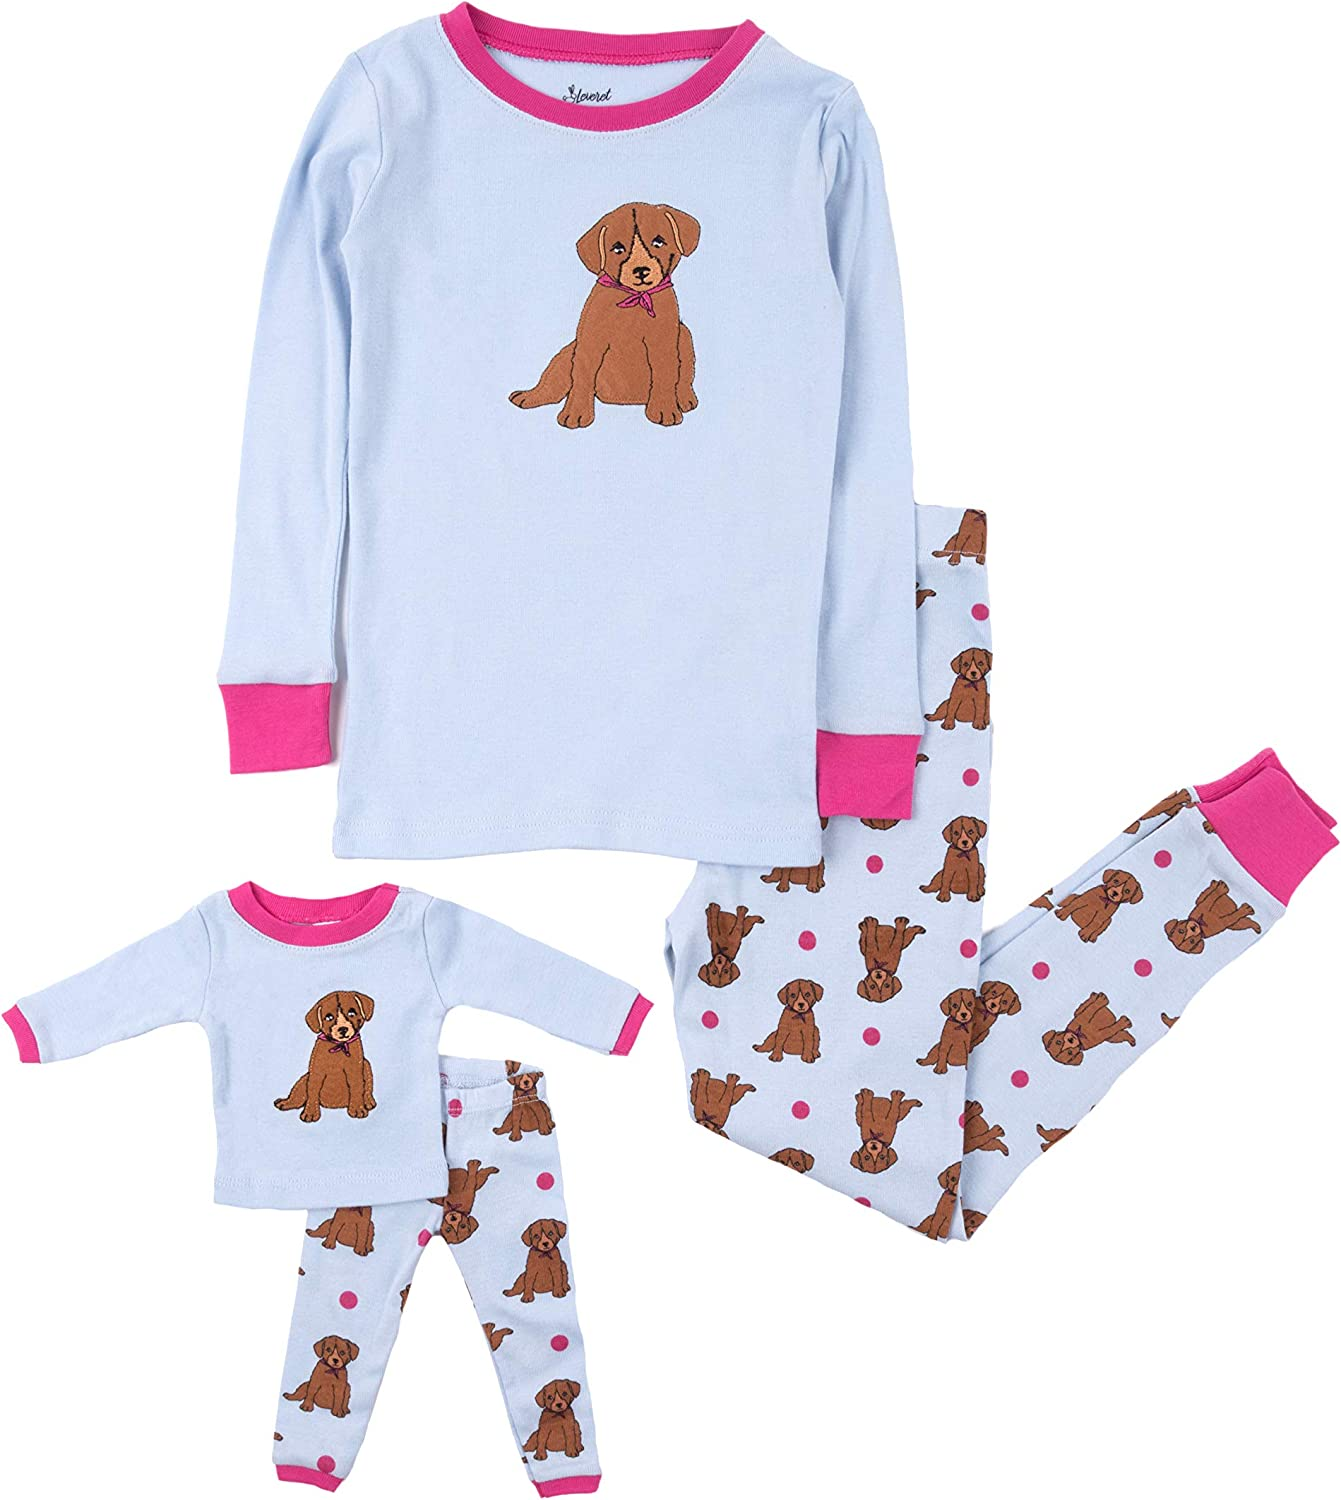 Size 2 Toddler-14 Years Leveret Kids /& Toddler Pajamas Matching Doll /& Girls Pajamas 100/% Cotton 2 Piece Pjs Set